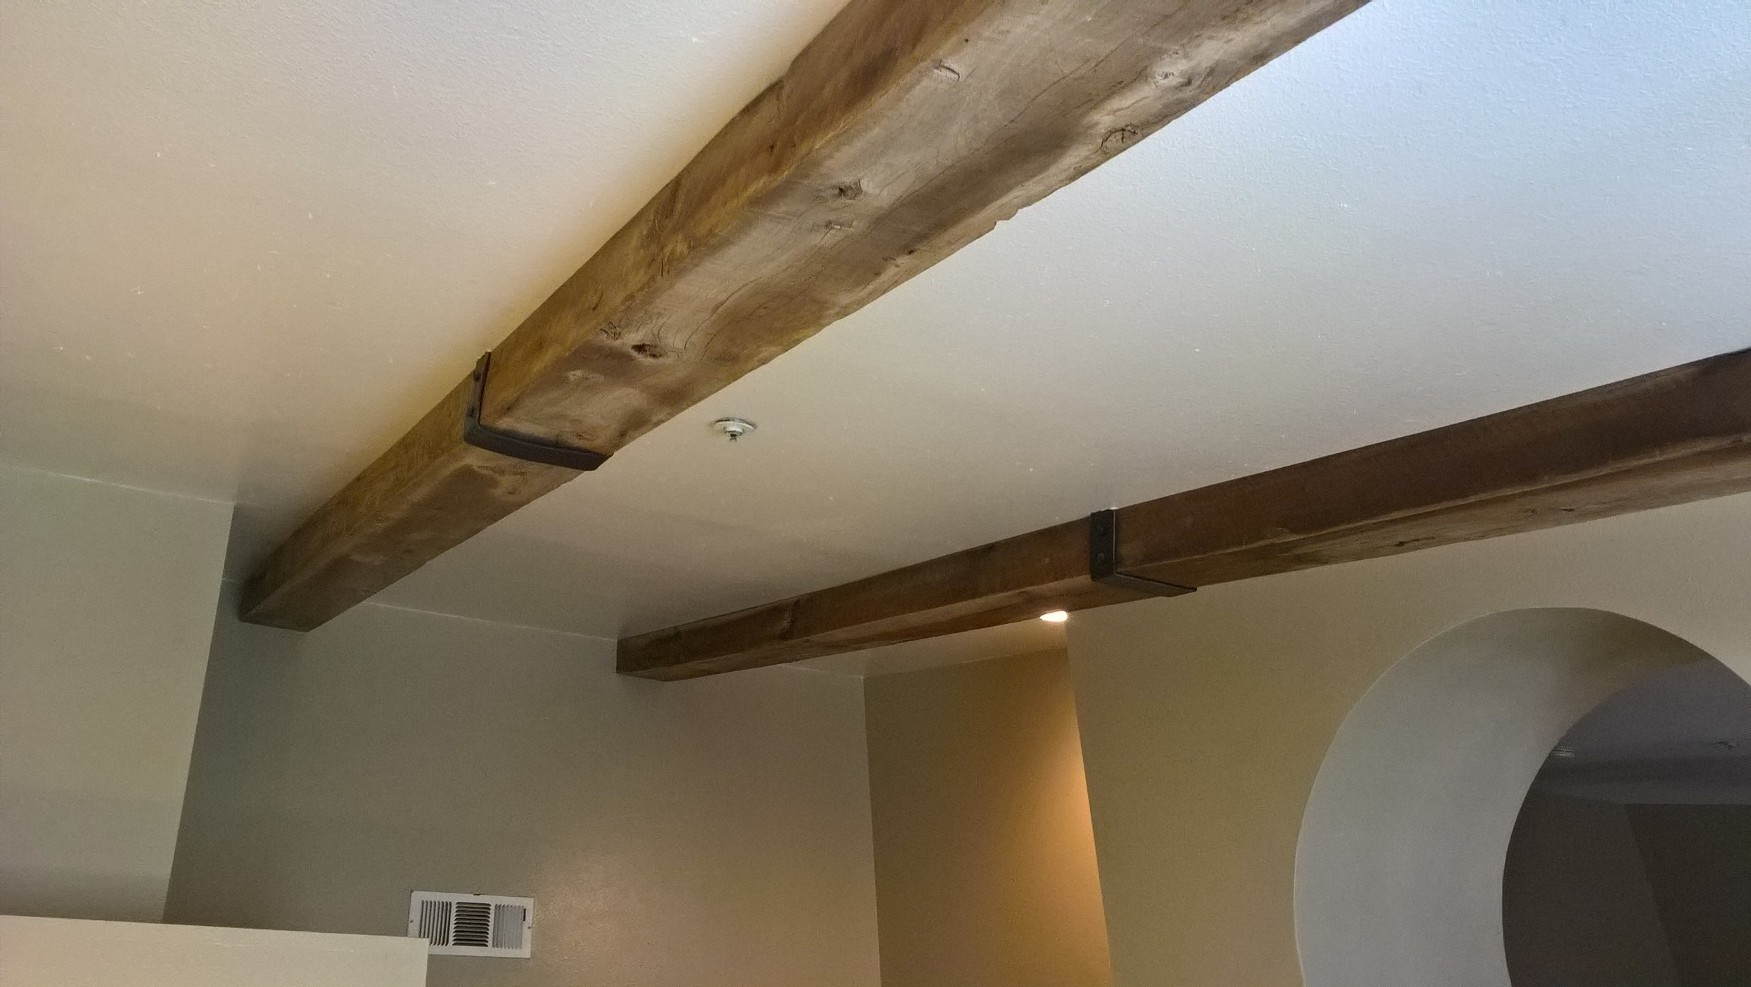 Ceiling Beams are a great addition to any home or space. Reclaimed beams can be purchased as a solid piece or beams can be custom design and built to order with reclaimed vintage lumber. U.S. Reclaimed, Vintage Lumber & Wood Works offers a variety of vintage lumber and reclaimed wood to custom design and build based on the wants and needs of the customer. Visit or contact the store to get started on your custom reclaimed wood project today.